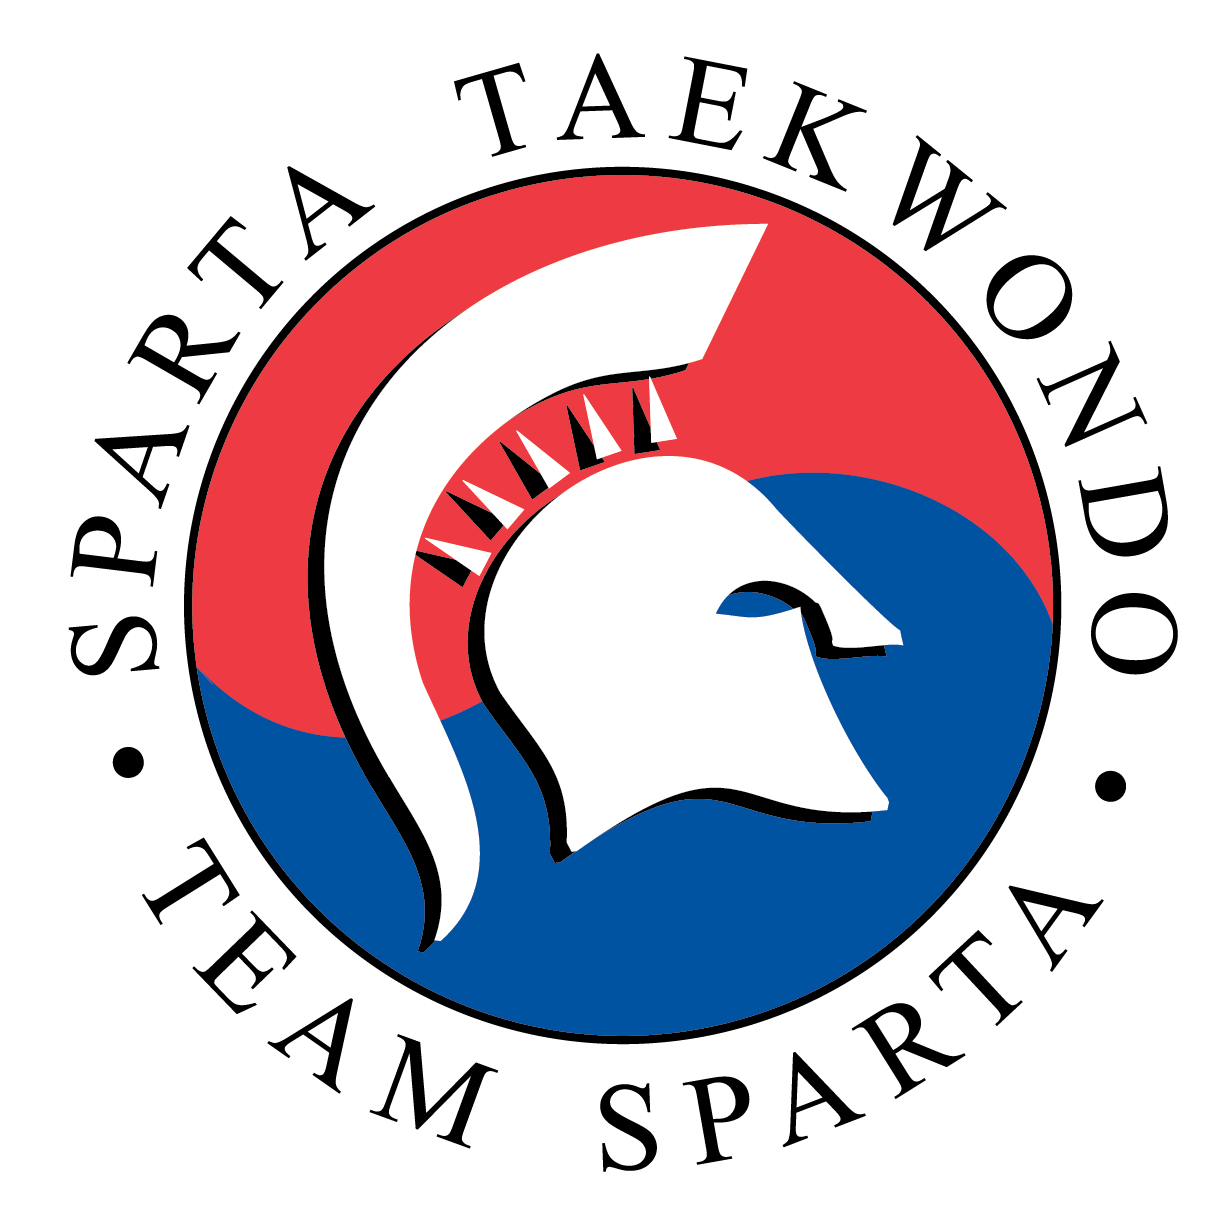 Sparta opened it's doors in 2004 and is now one of the largest Taekwondo schools in the East Bay. Sparta Taekwondo is also Northern California's designated site for Filipino Americans attain scholarships at various universities in the Philippines. Their instructors have competed on the national level, including national champions, Olympic competitors, and Junior National Team qualifiers. Sparta was formerly located in Encina Grande Shopping Center.